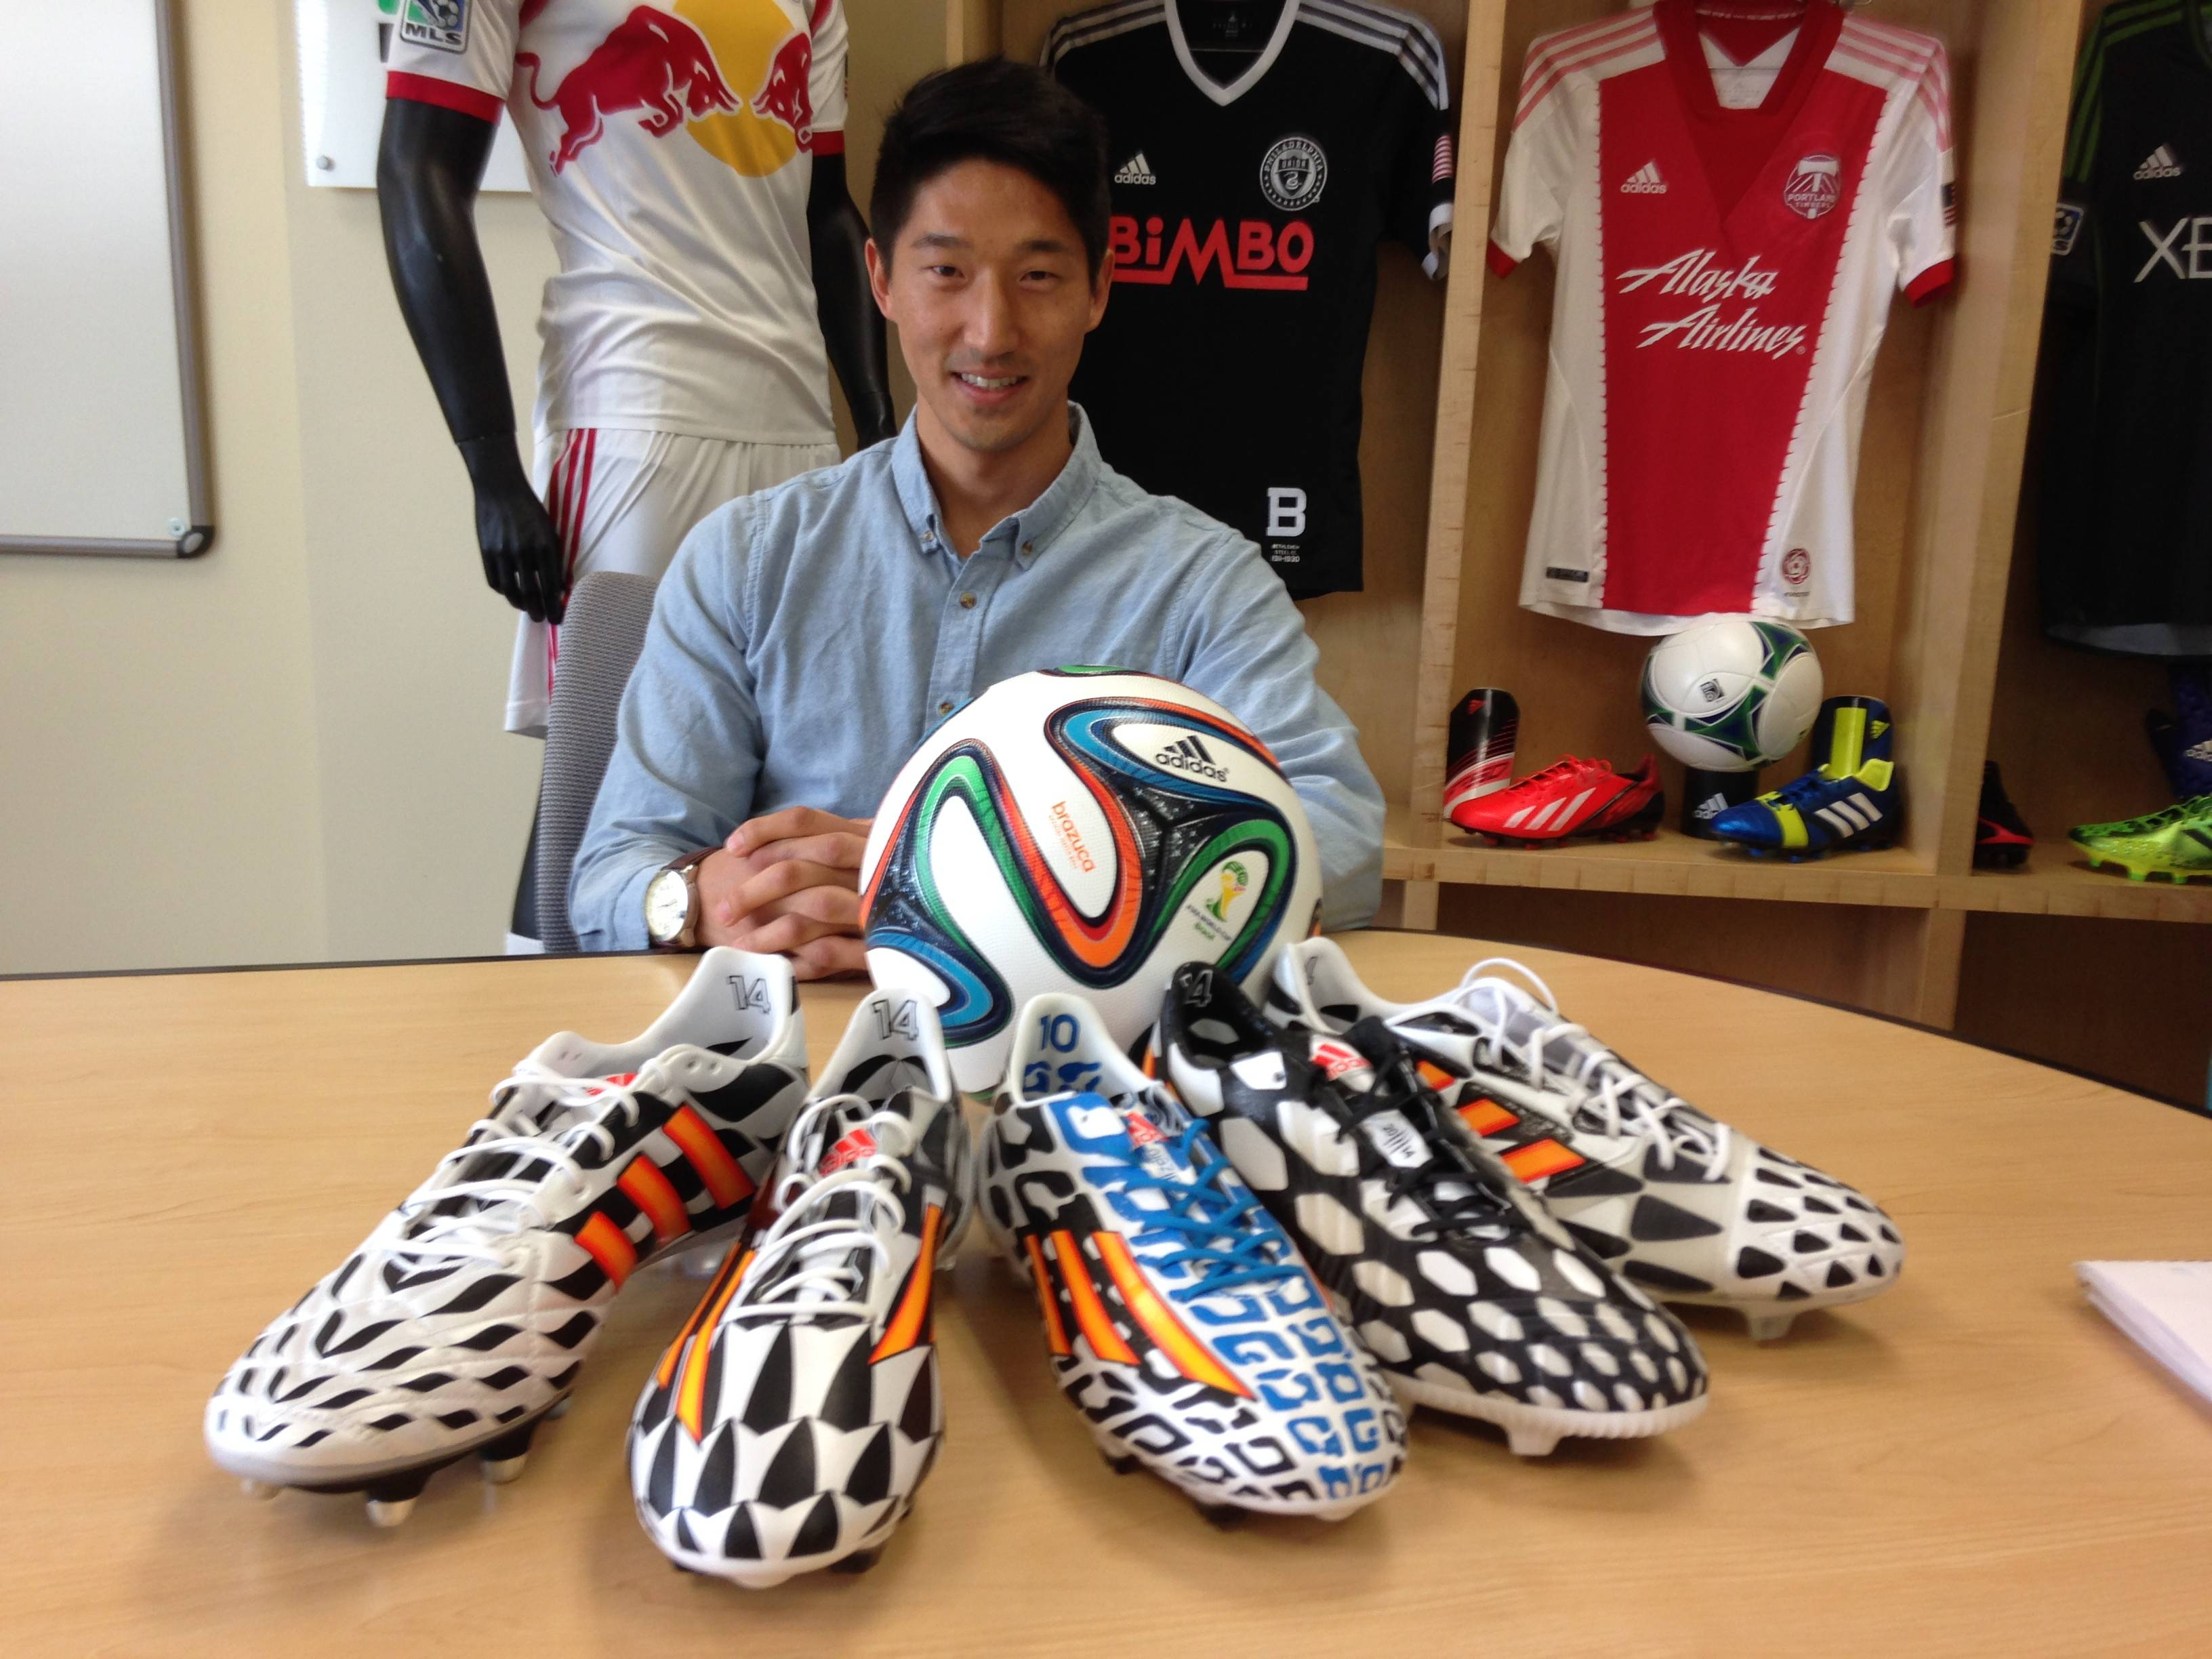 Peter Hong, merchandise manager for adidas, with the company's Battle Pack collection of soccer boots and the Brazuca, the official ball of the 2014 World Cup, at the conpany's headquarters in Portland, Ore.